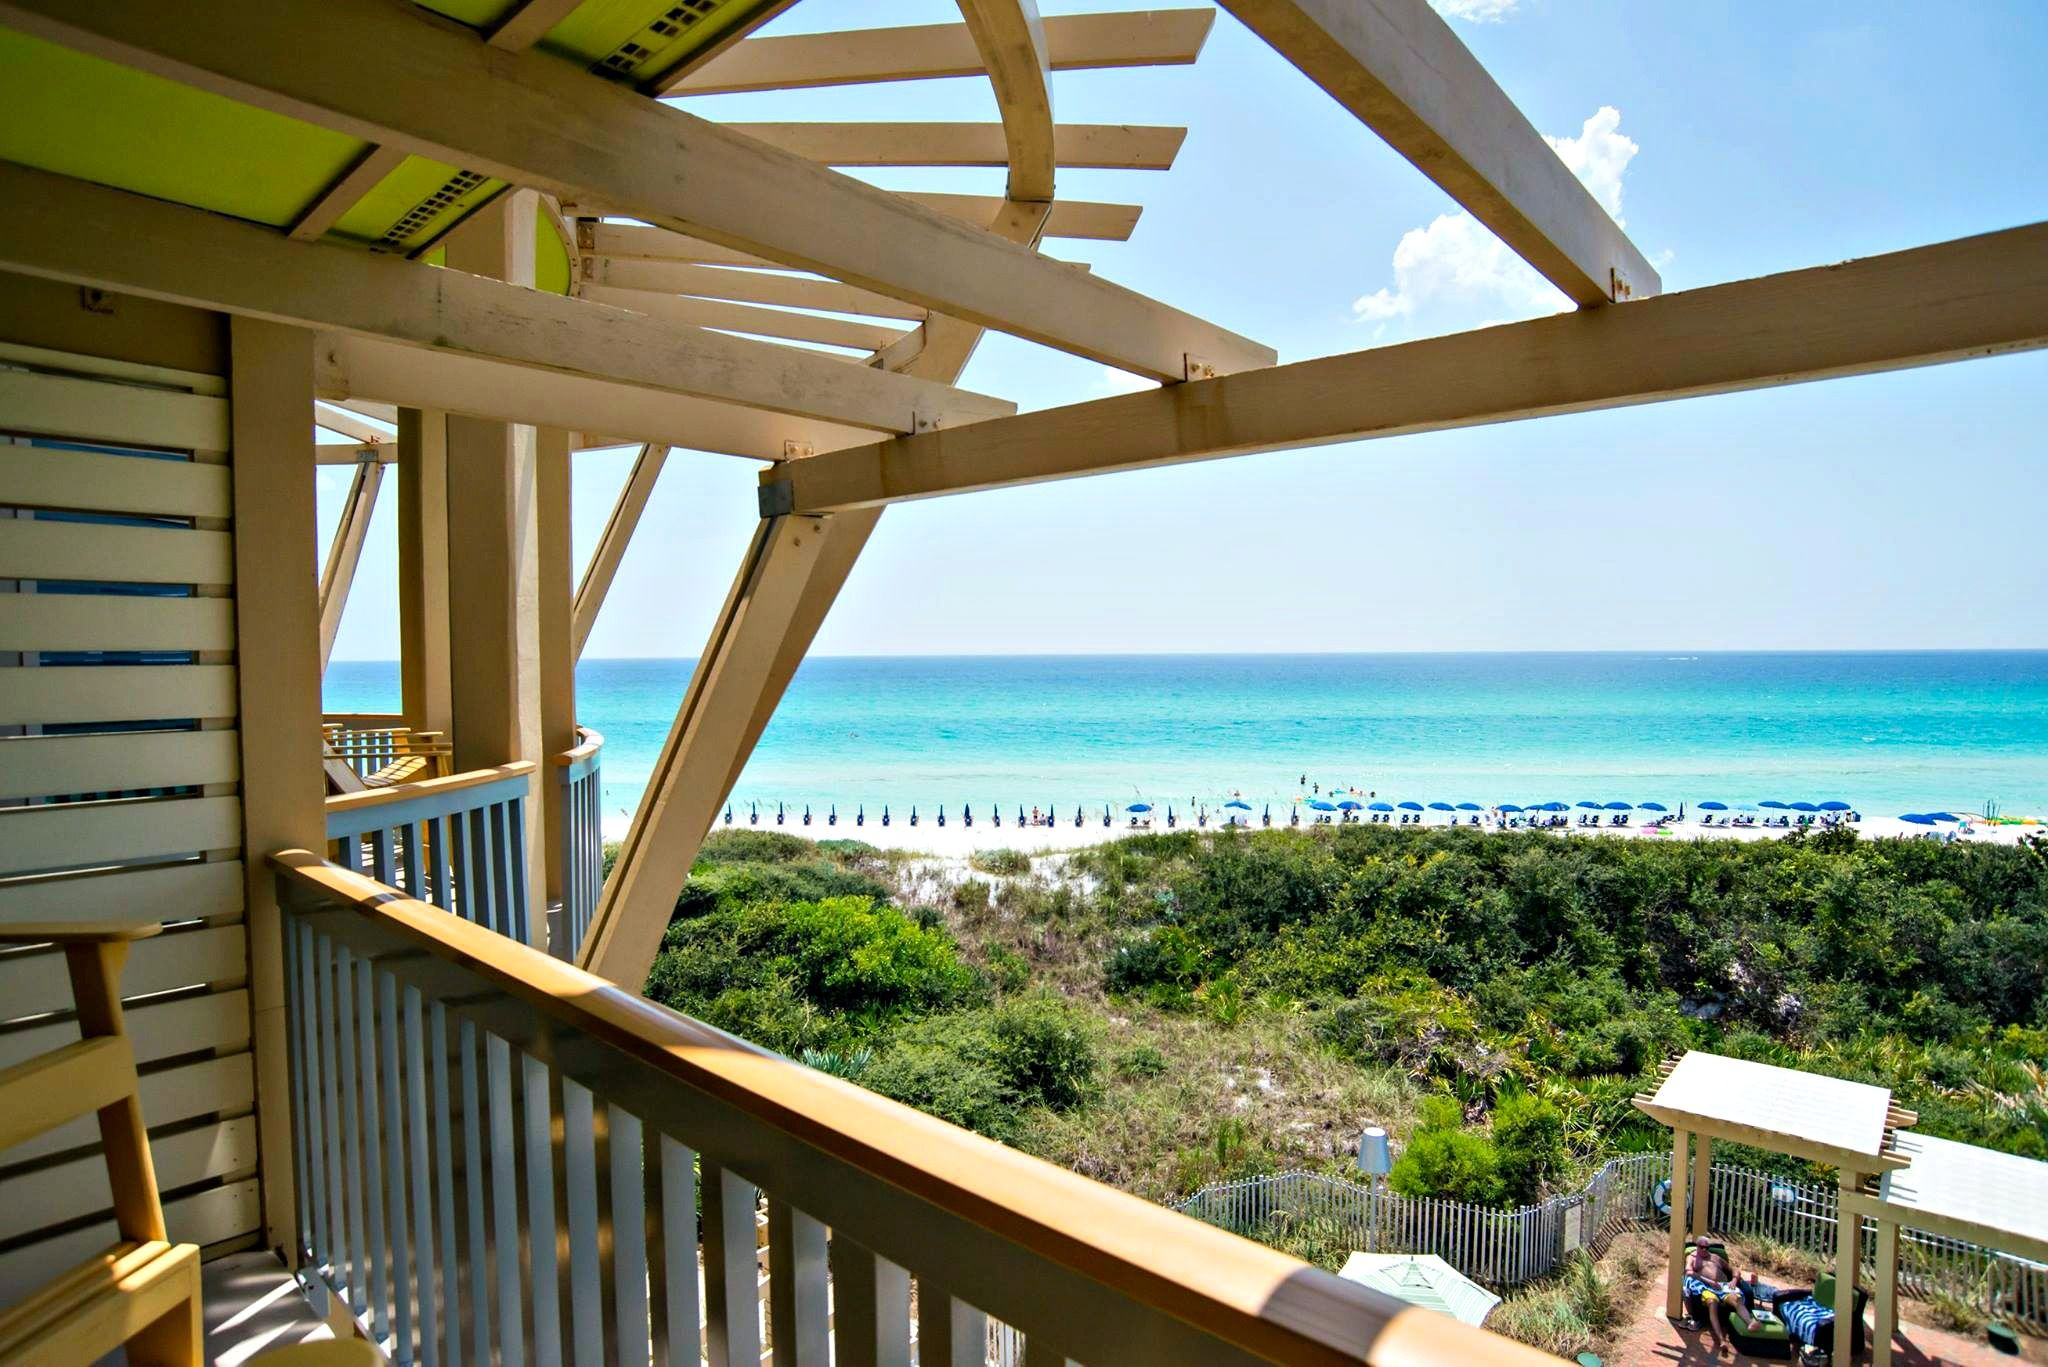 Balcony View At Watercolor Inn And Resort Watercolor Inn And Resort